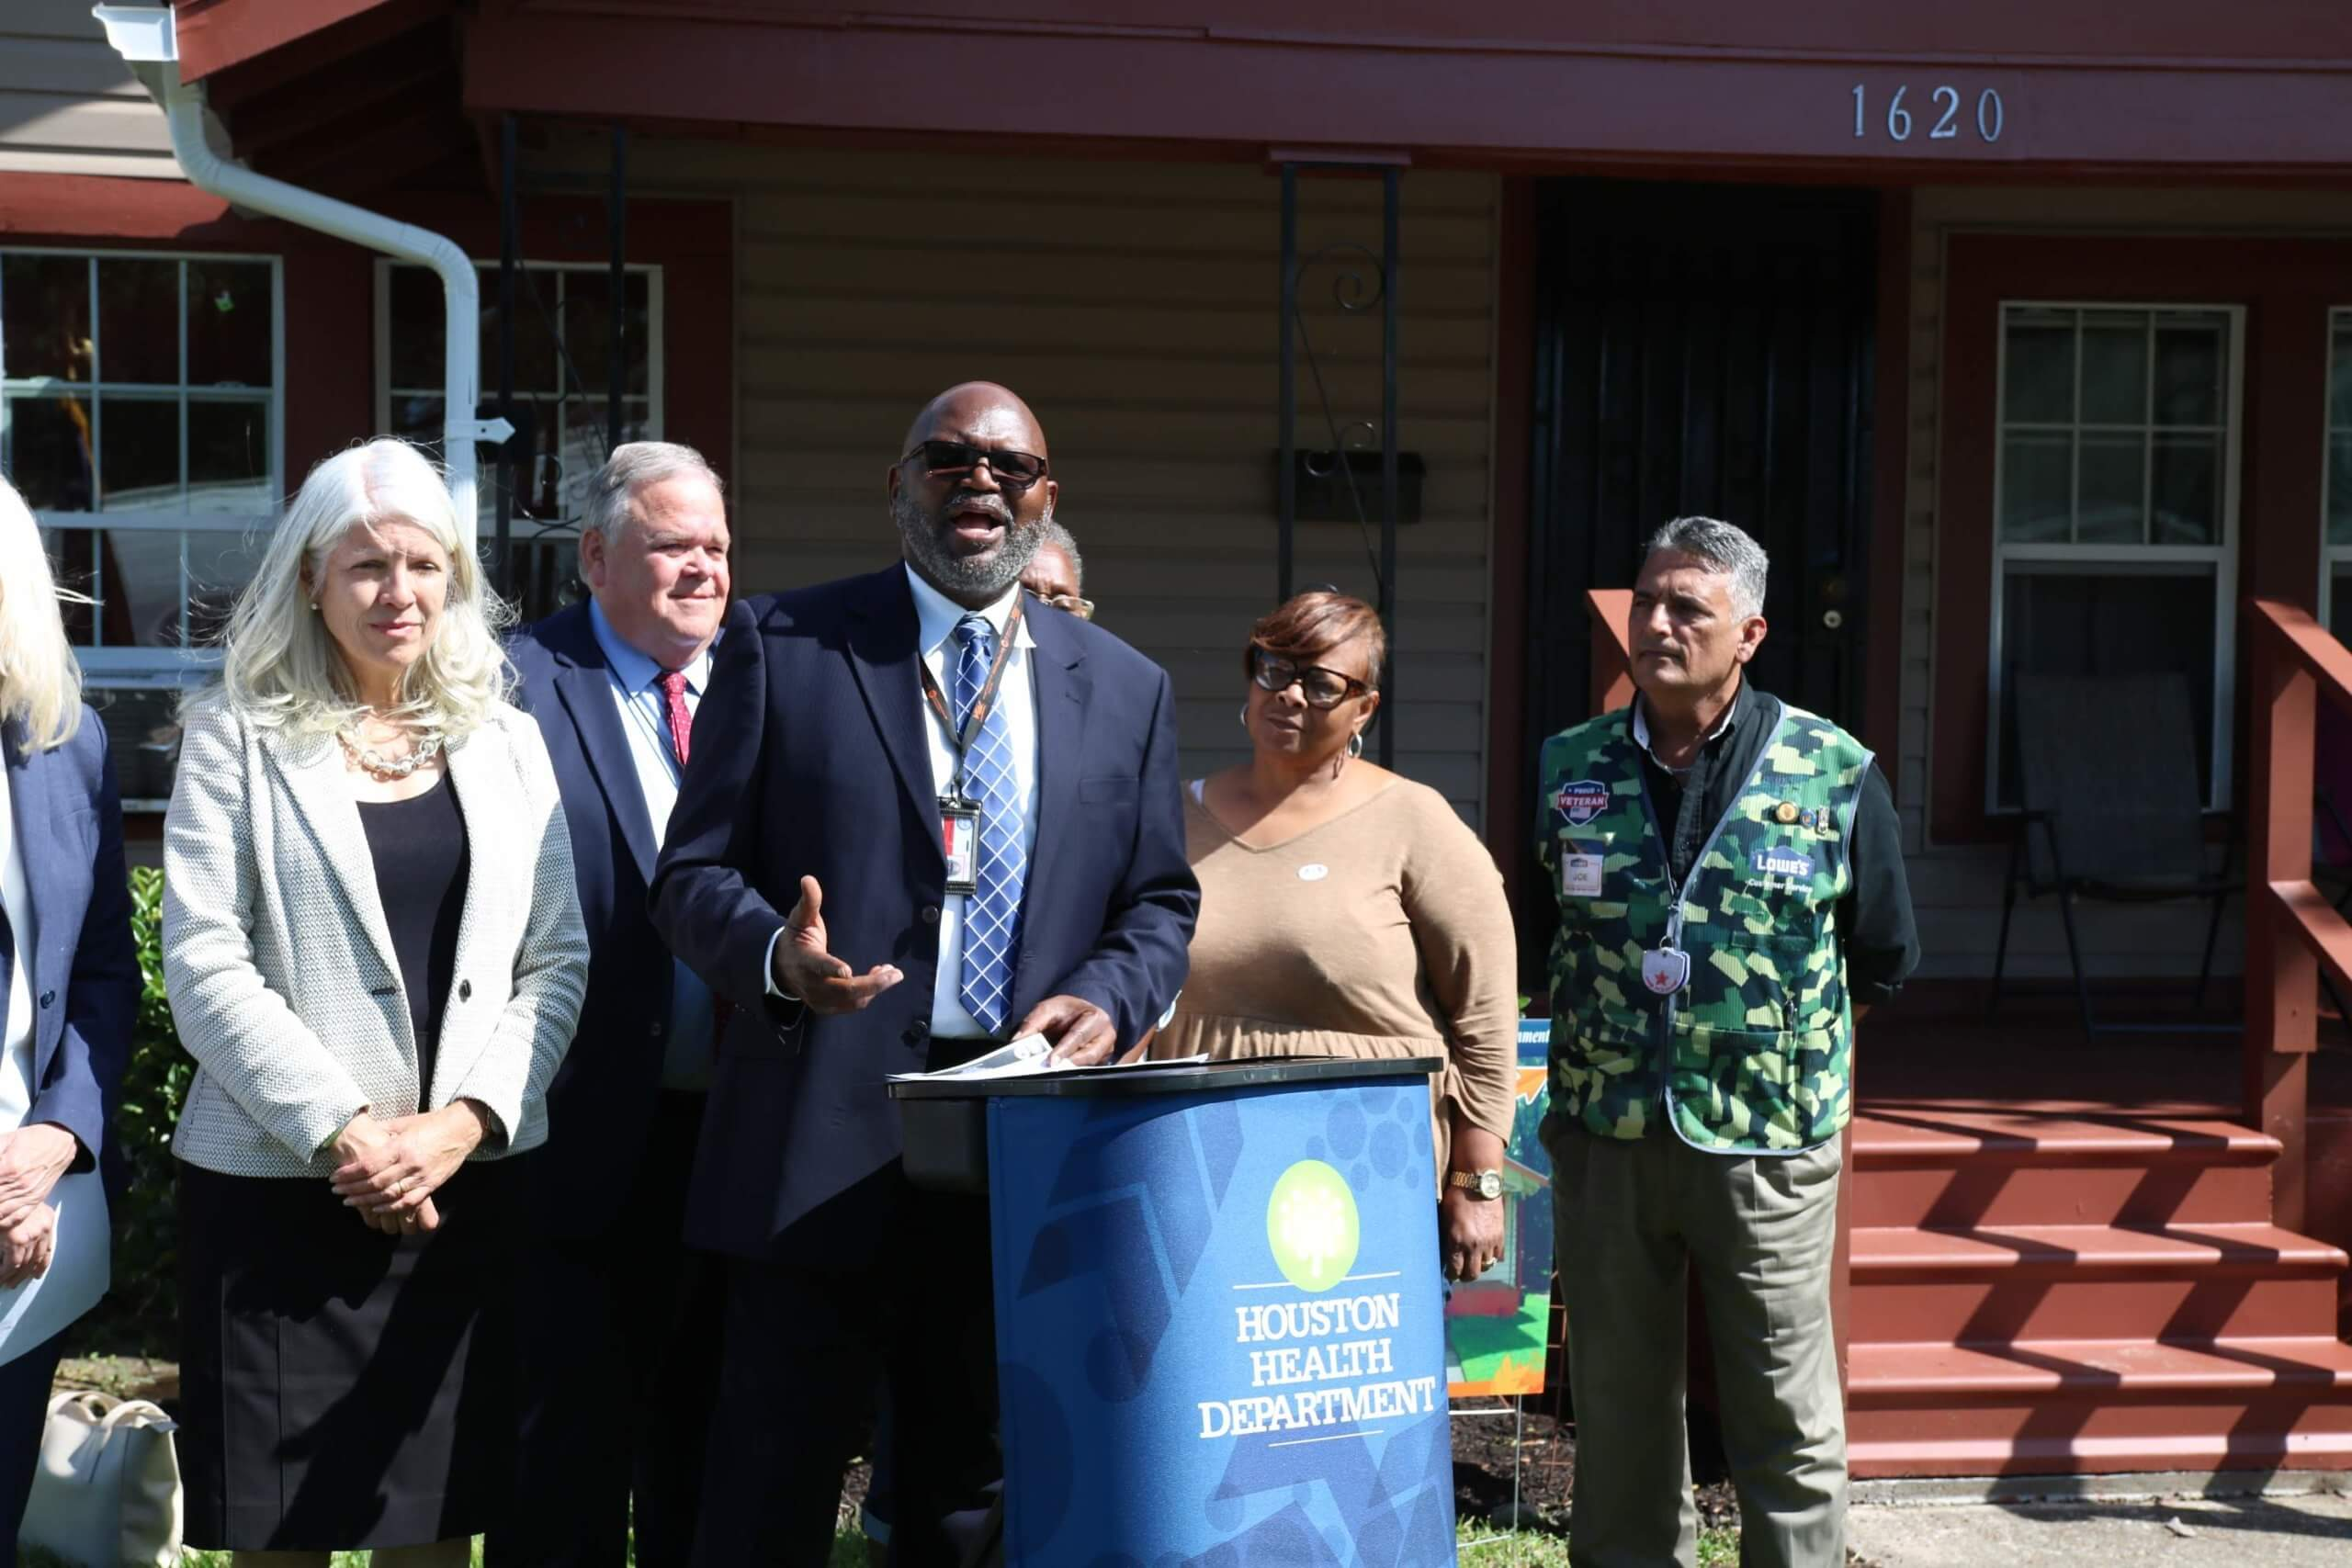 Houston Health Department Director Stephen Williams announces a $9.7 million HUD grant for lead-based paint hazard reduction to 450 homes outside a recently abated house in Fifth Ward. He is flanked by Clarissa Smith, to his immediate right, a community block captain who refers homes to the program. (Photo courtesy of Houston Health Department)